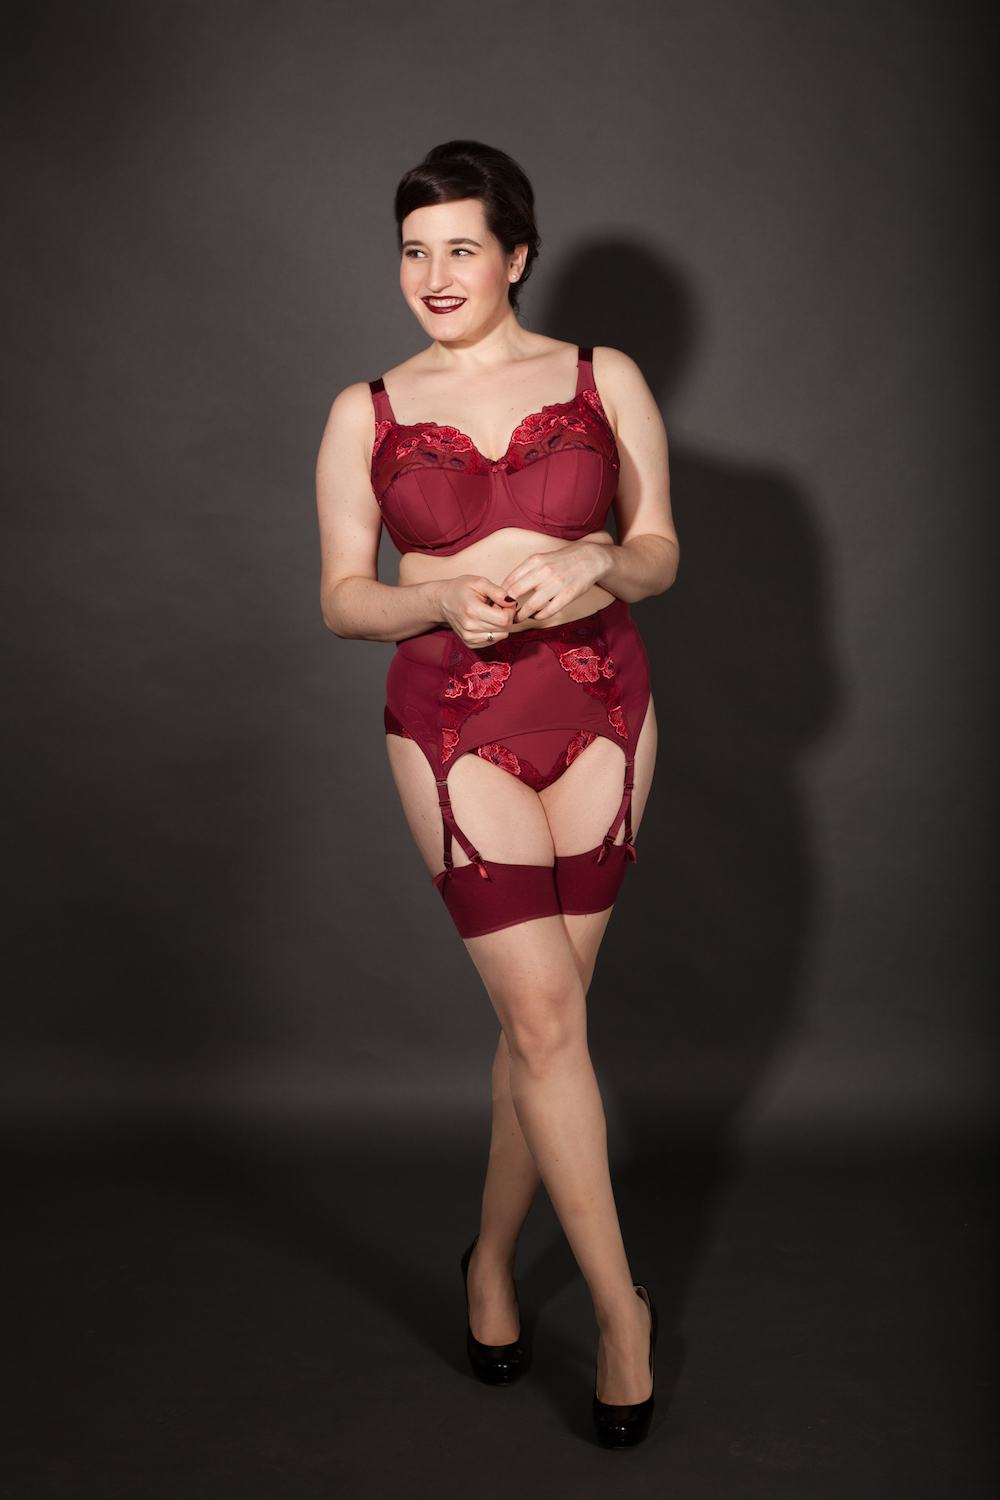 Sweet Nothing Du Jour 7 13 16  New Sizes and New Styles from Playful ... 5830cab6c